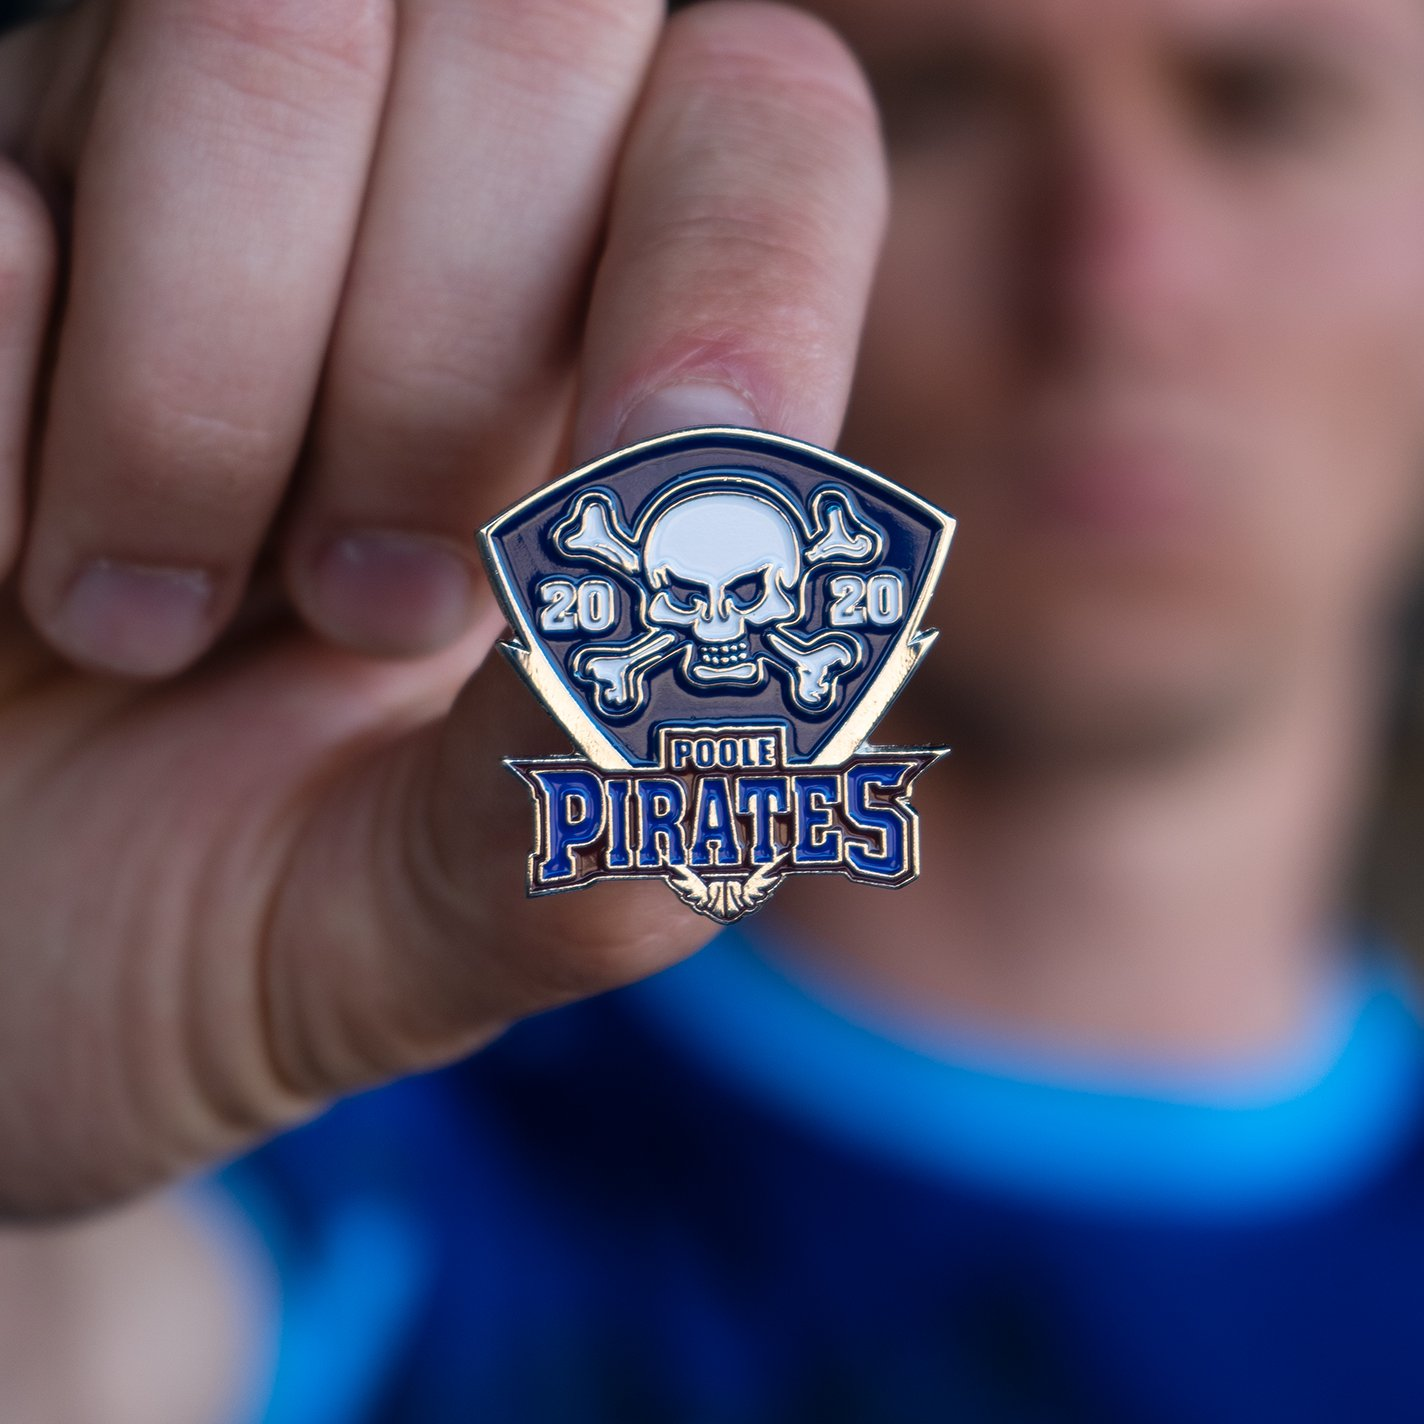 NEW Poole Pirates 2020 Pin (Silver)